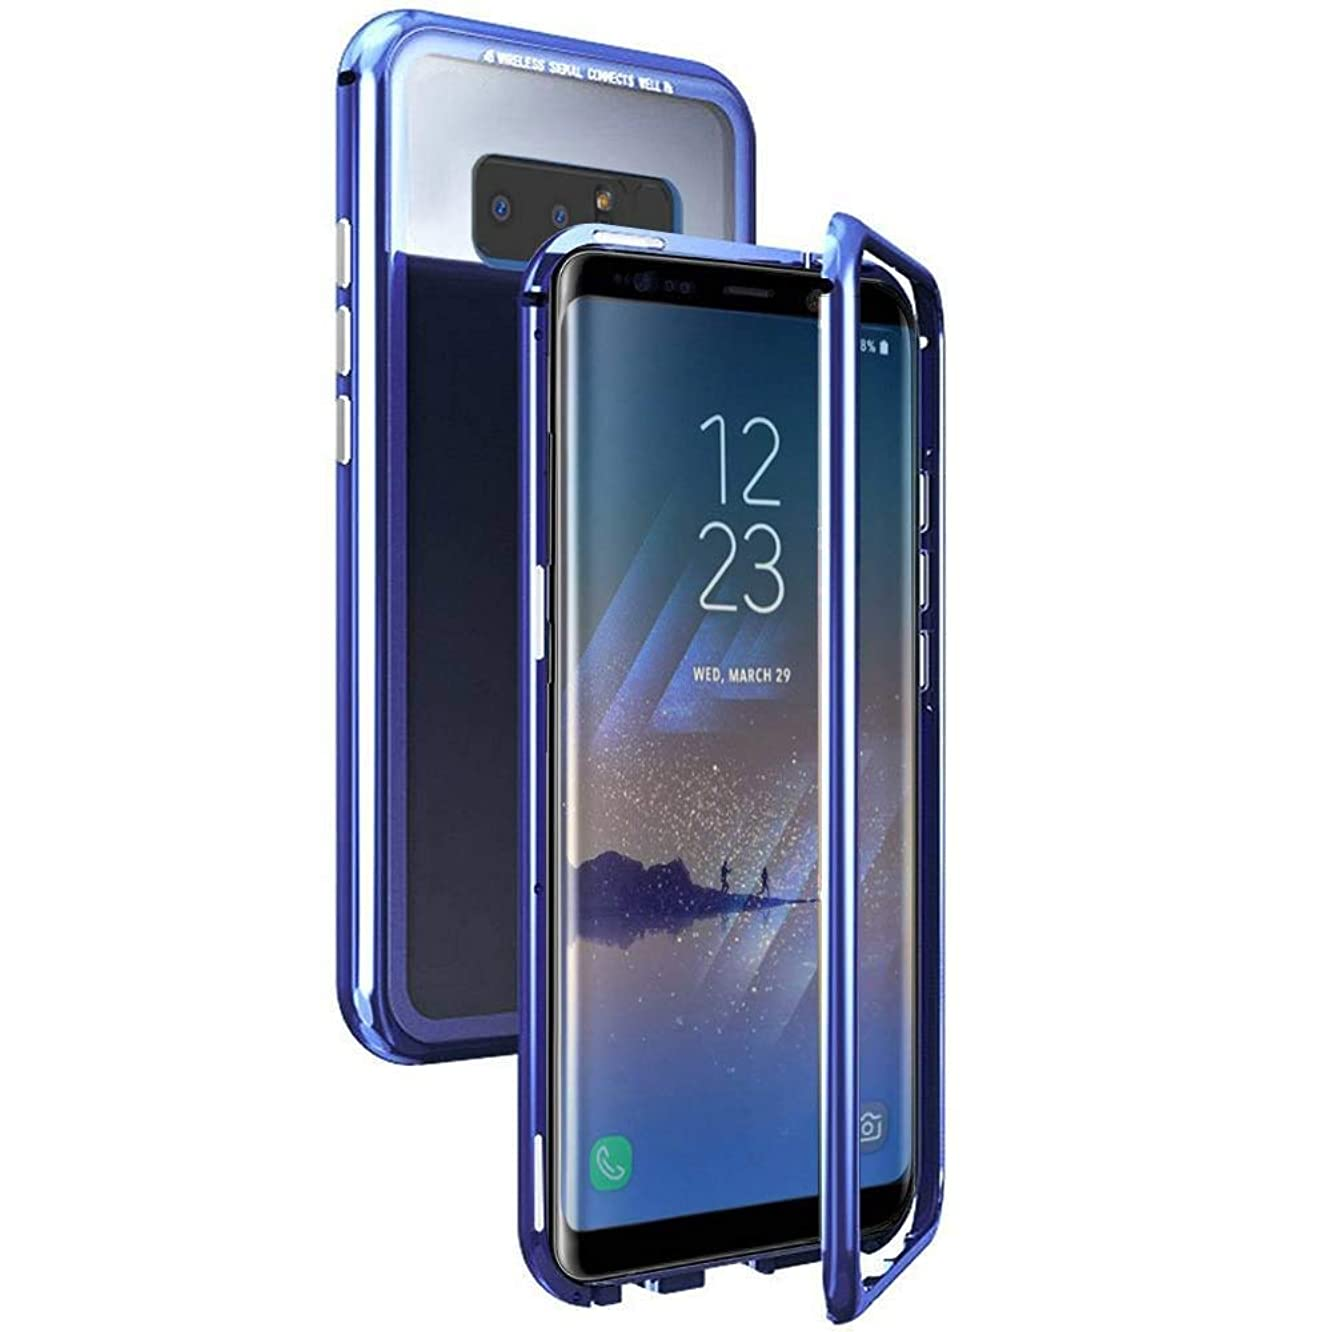 QLTYPRI Samsung Galaxy Note 9 Case, Magnetic Adsorption Metal Case Aluminum 9H Tempered Glass Back Cover [NO Screen Protector] [Support Wireless Charging] for Samsung Galaxy Note 9 - Clear Blue